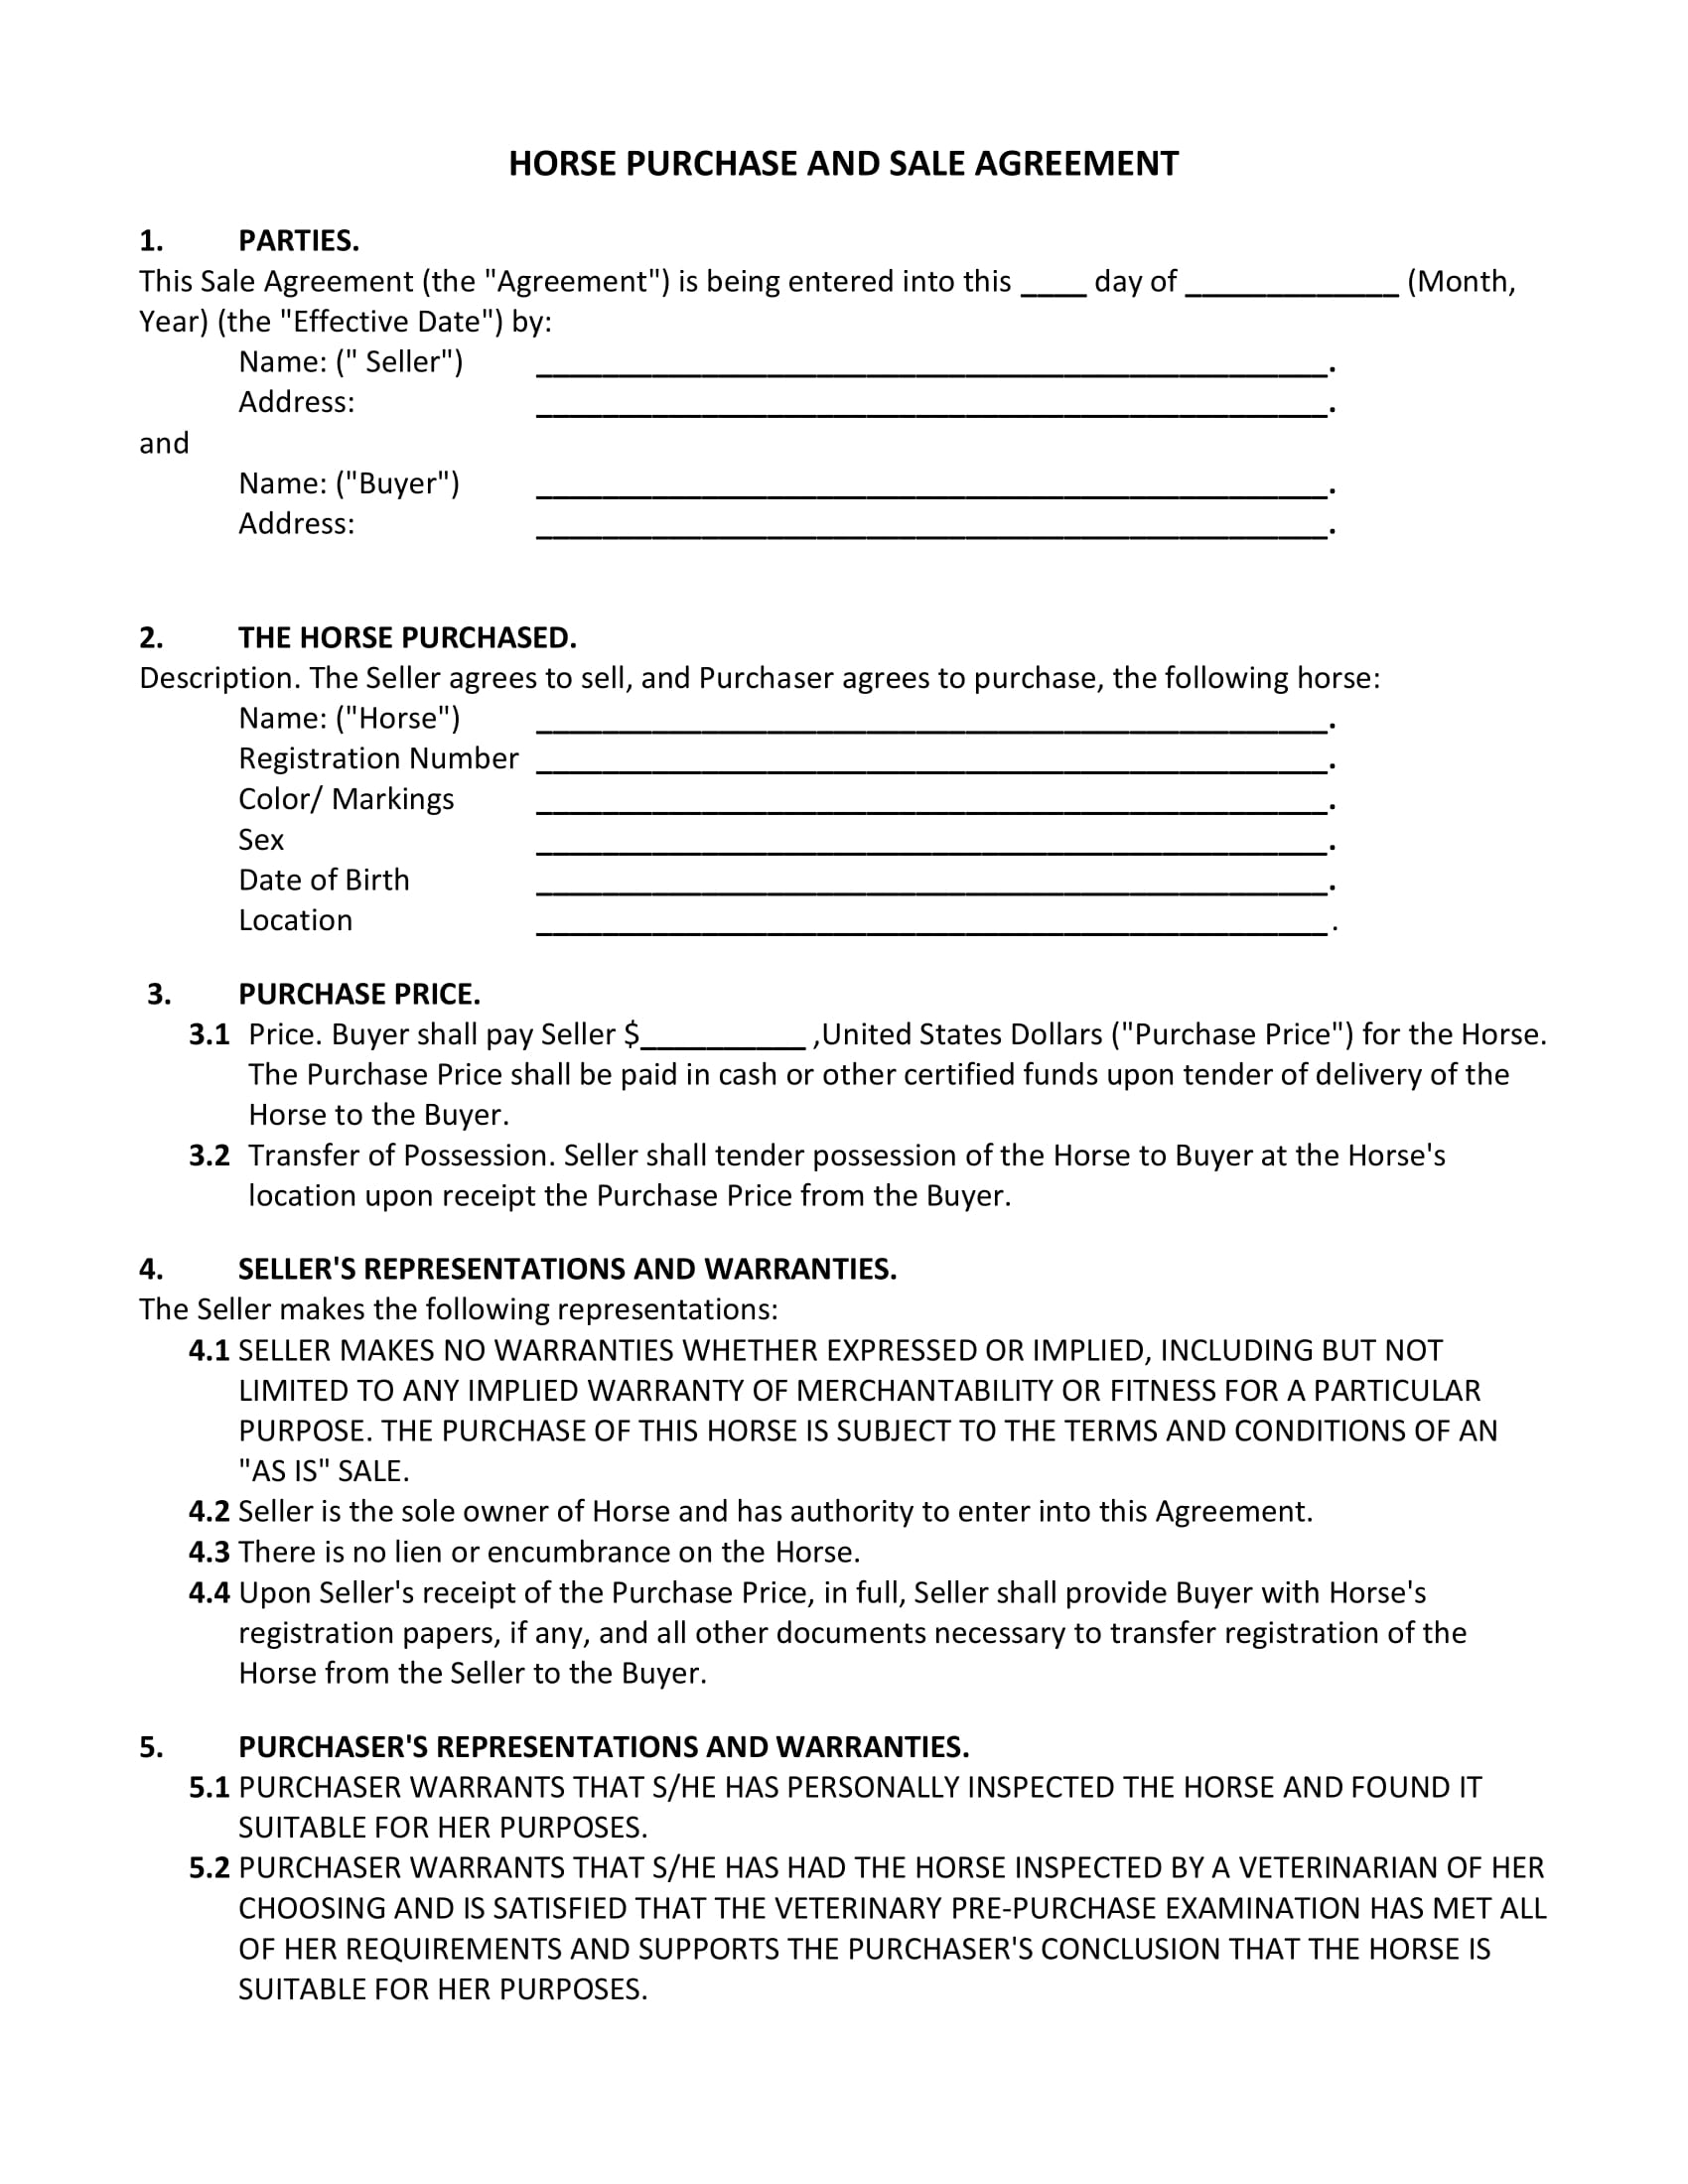 horse buy and sell contract form 1